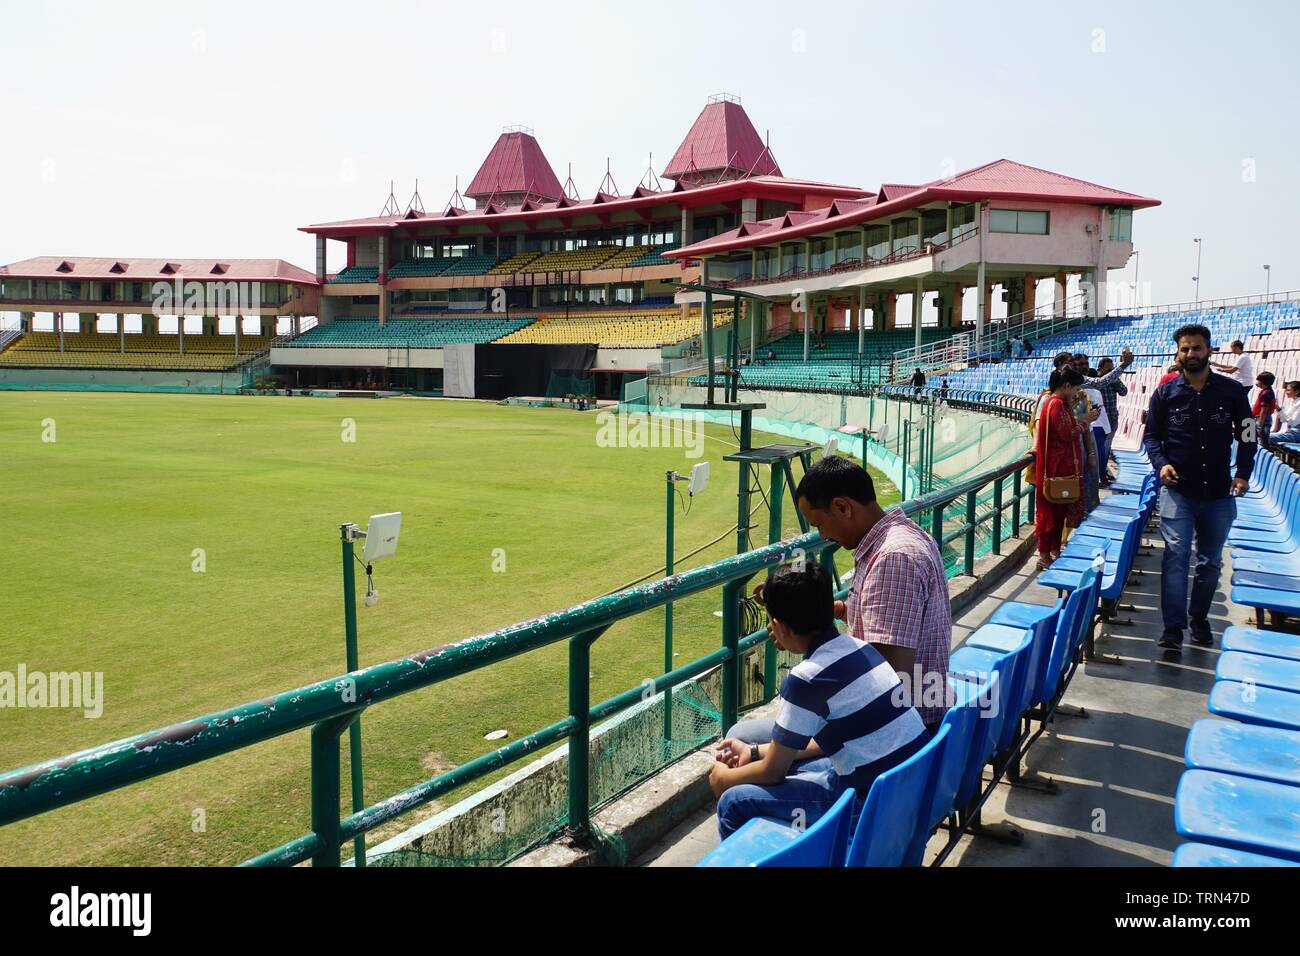 Sightseers at the scenic Himachal Pradesh Cricket Stadium - Stock Image